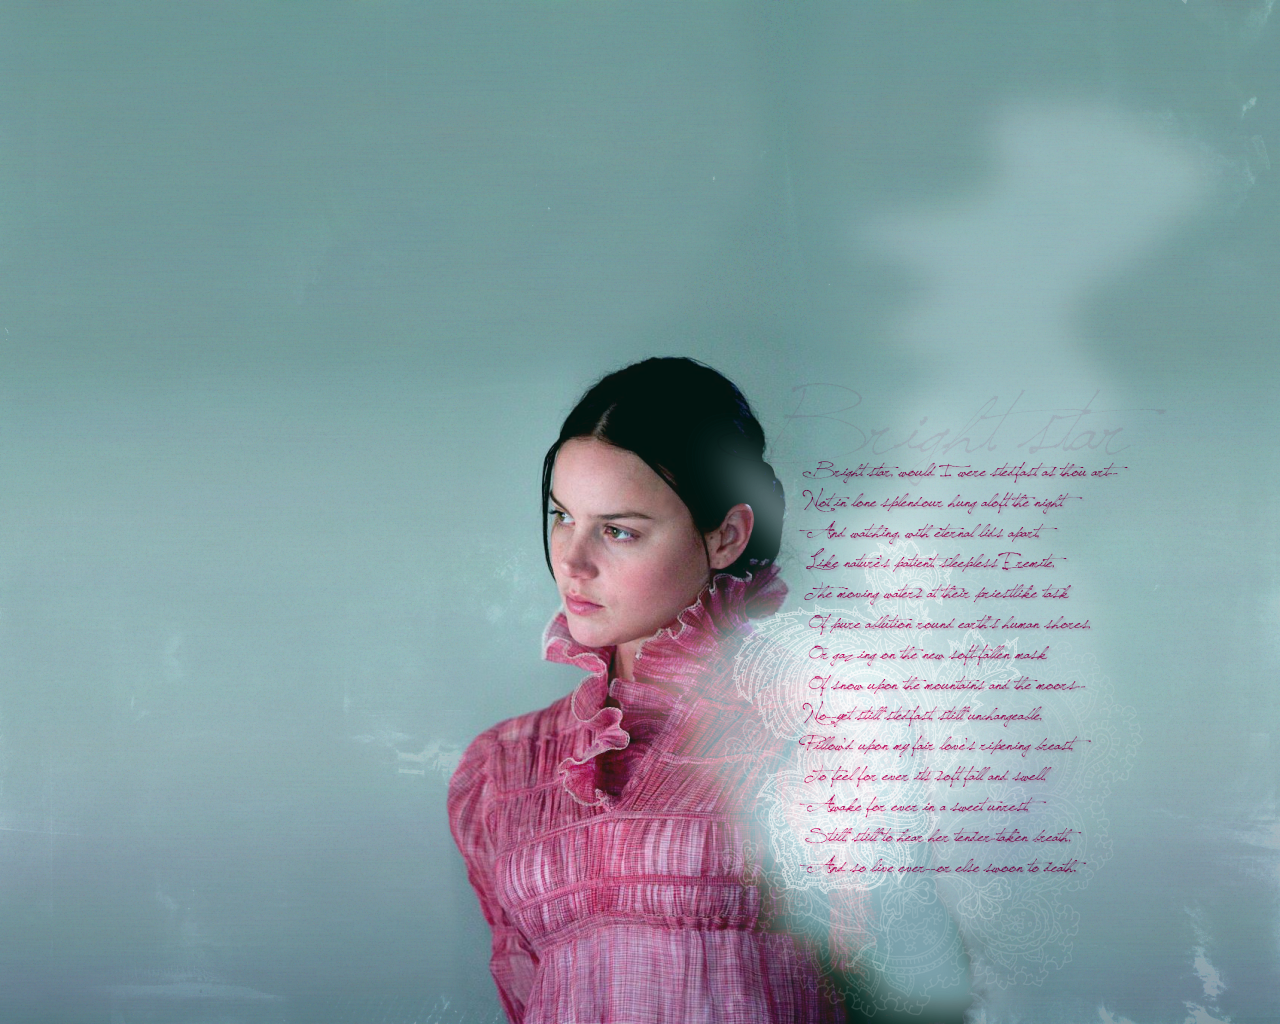 Bright Star Wallpaper By Olde Fashioned On Deviantart